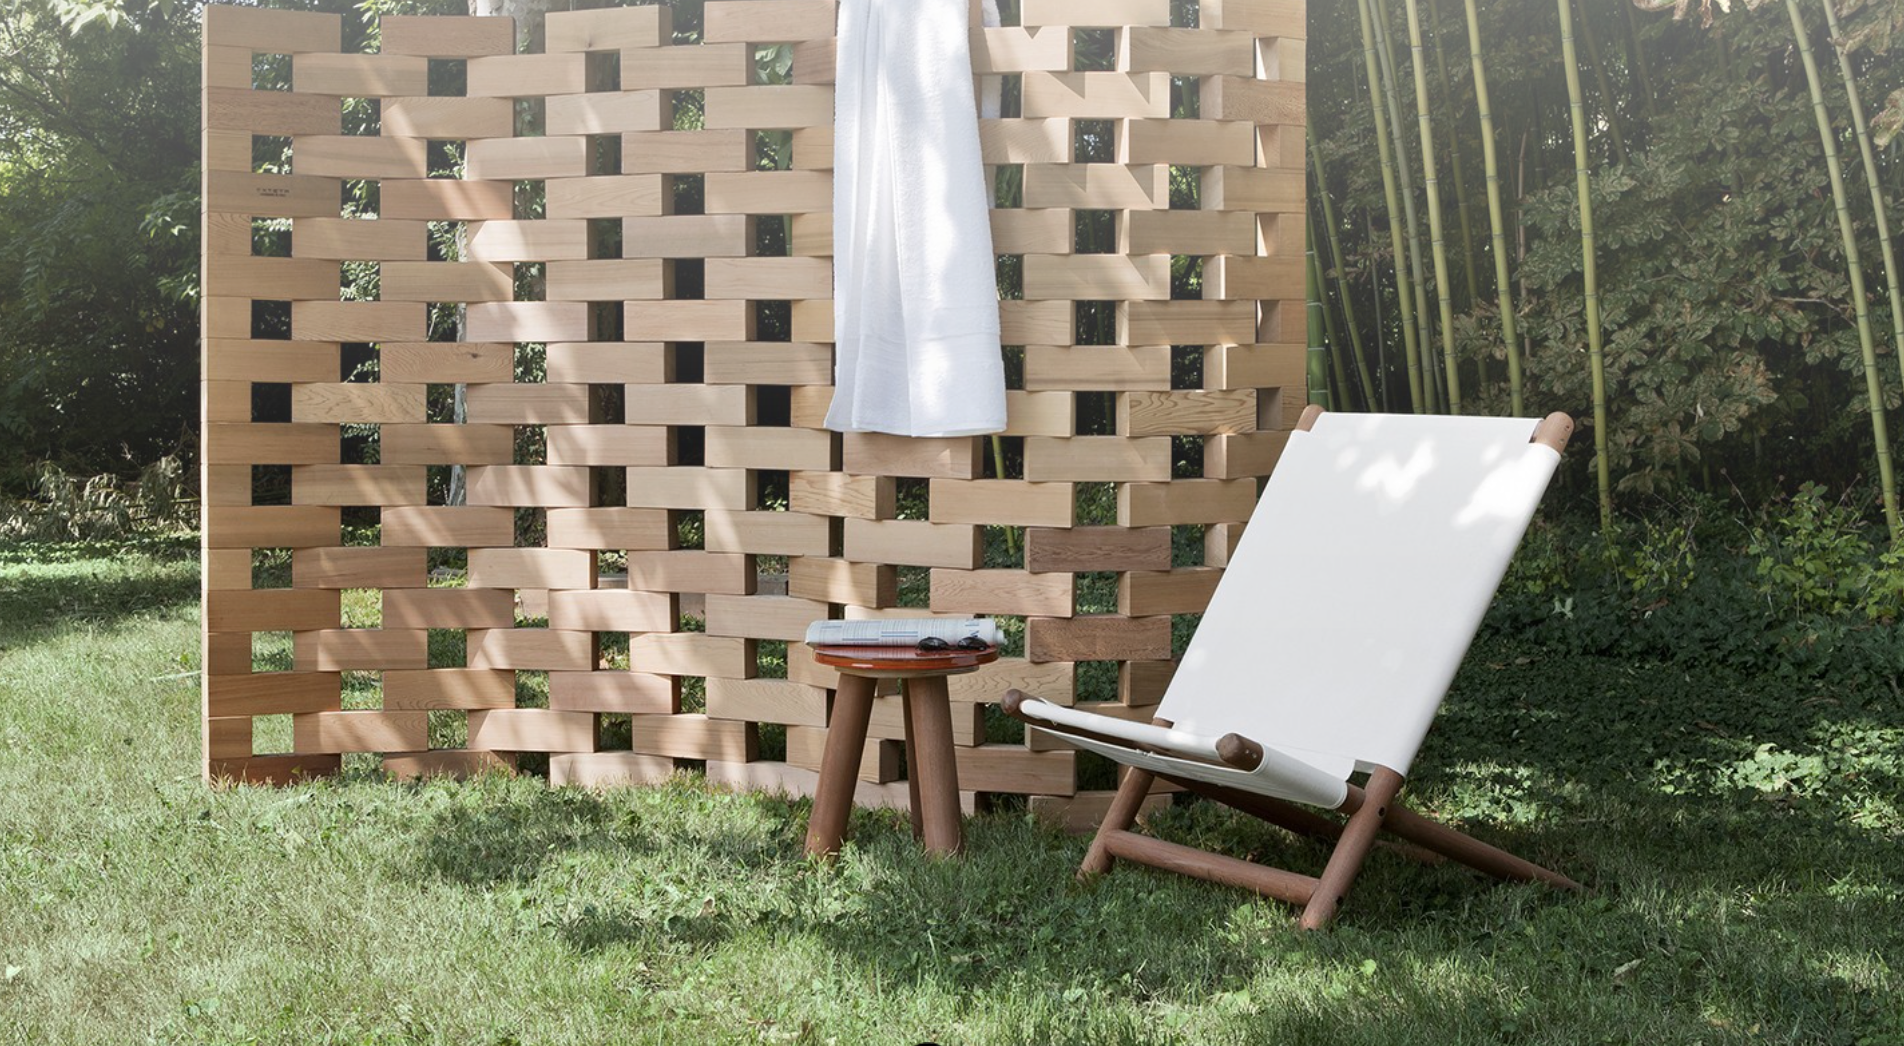 Paraggi Beach Chair & Zen Screen   -  Inquire